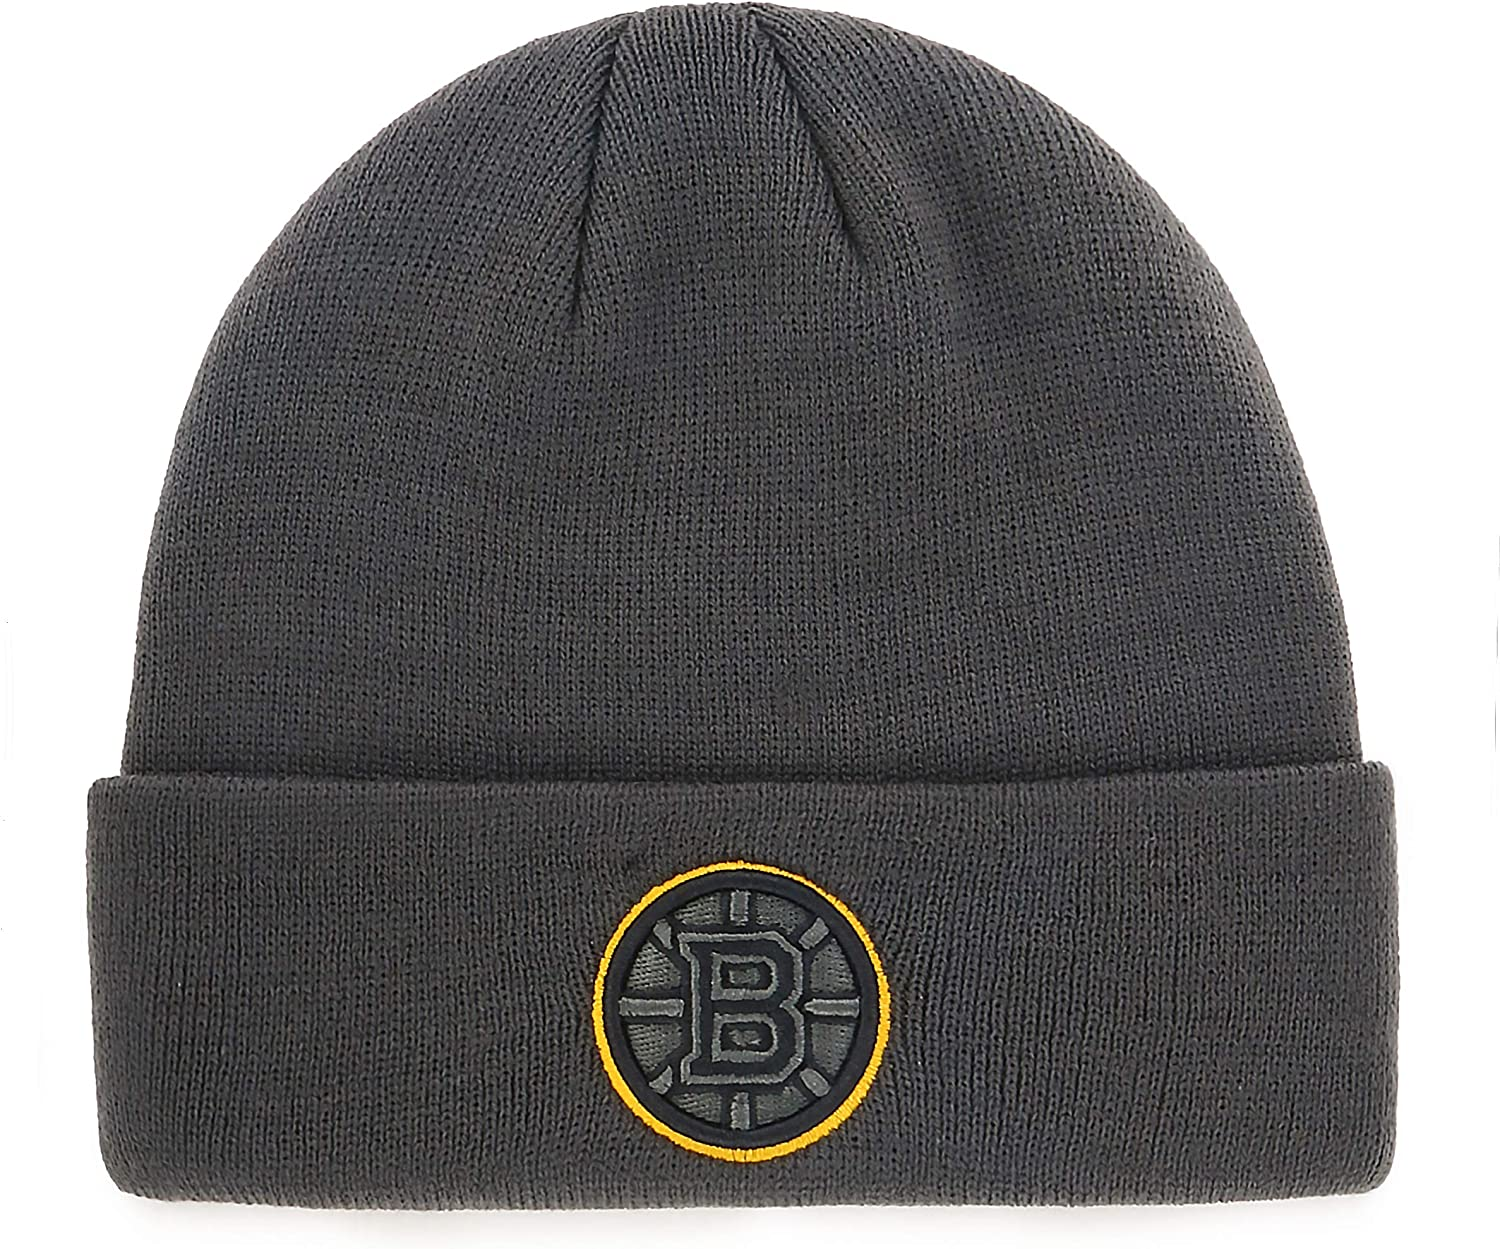 OTS NHL Men's Raised Cuff Knit Cap